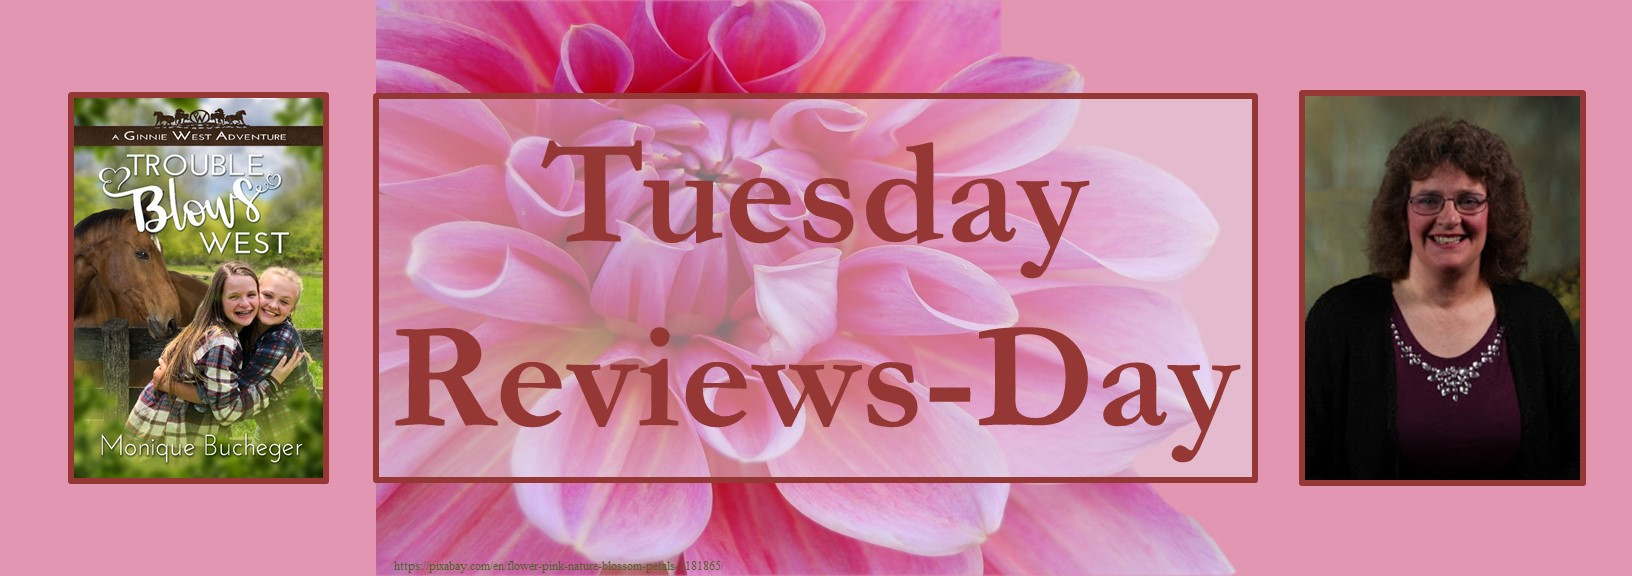 101320 - trouble blows west - tuesday reviews day banner